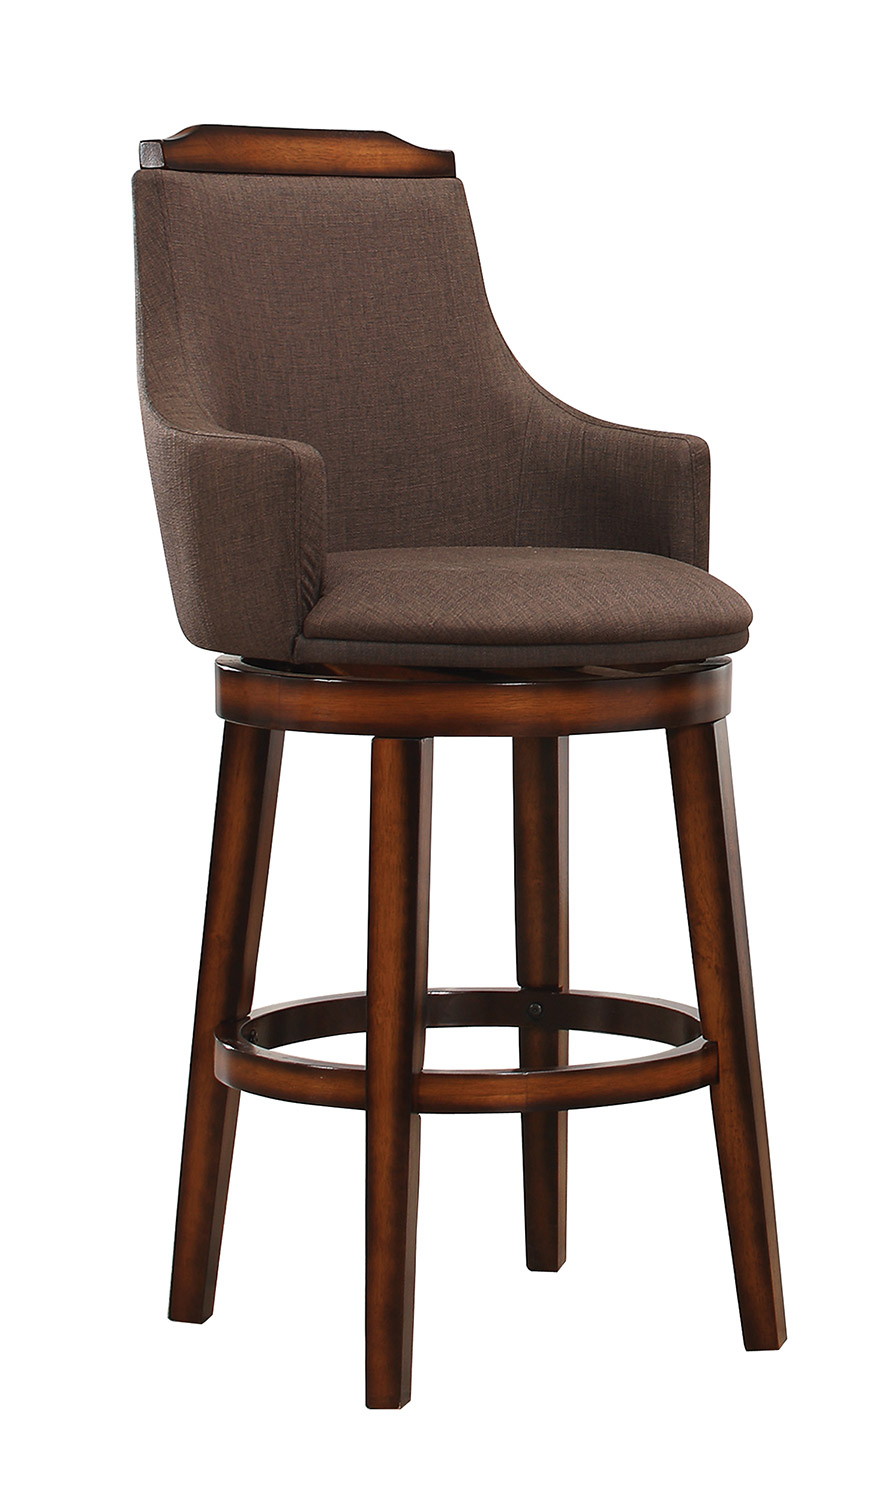 Homelegance Bayshore Swivel Pub Height Chair - Chocolate/Linen